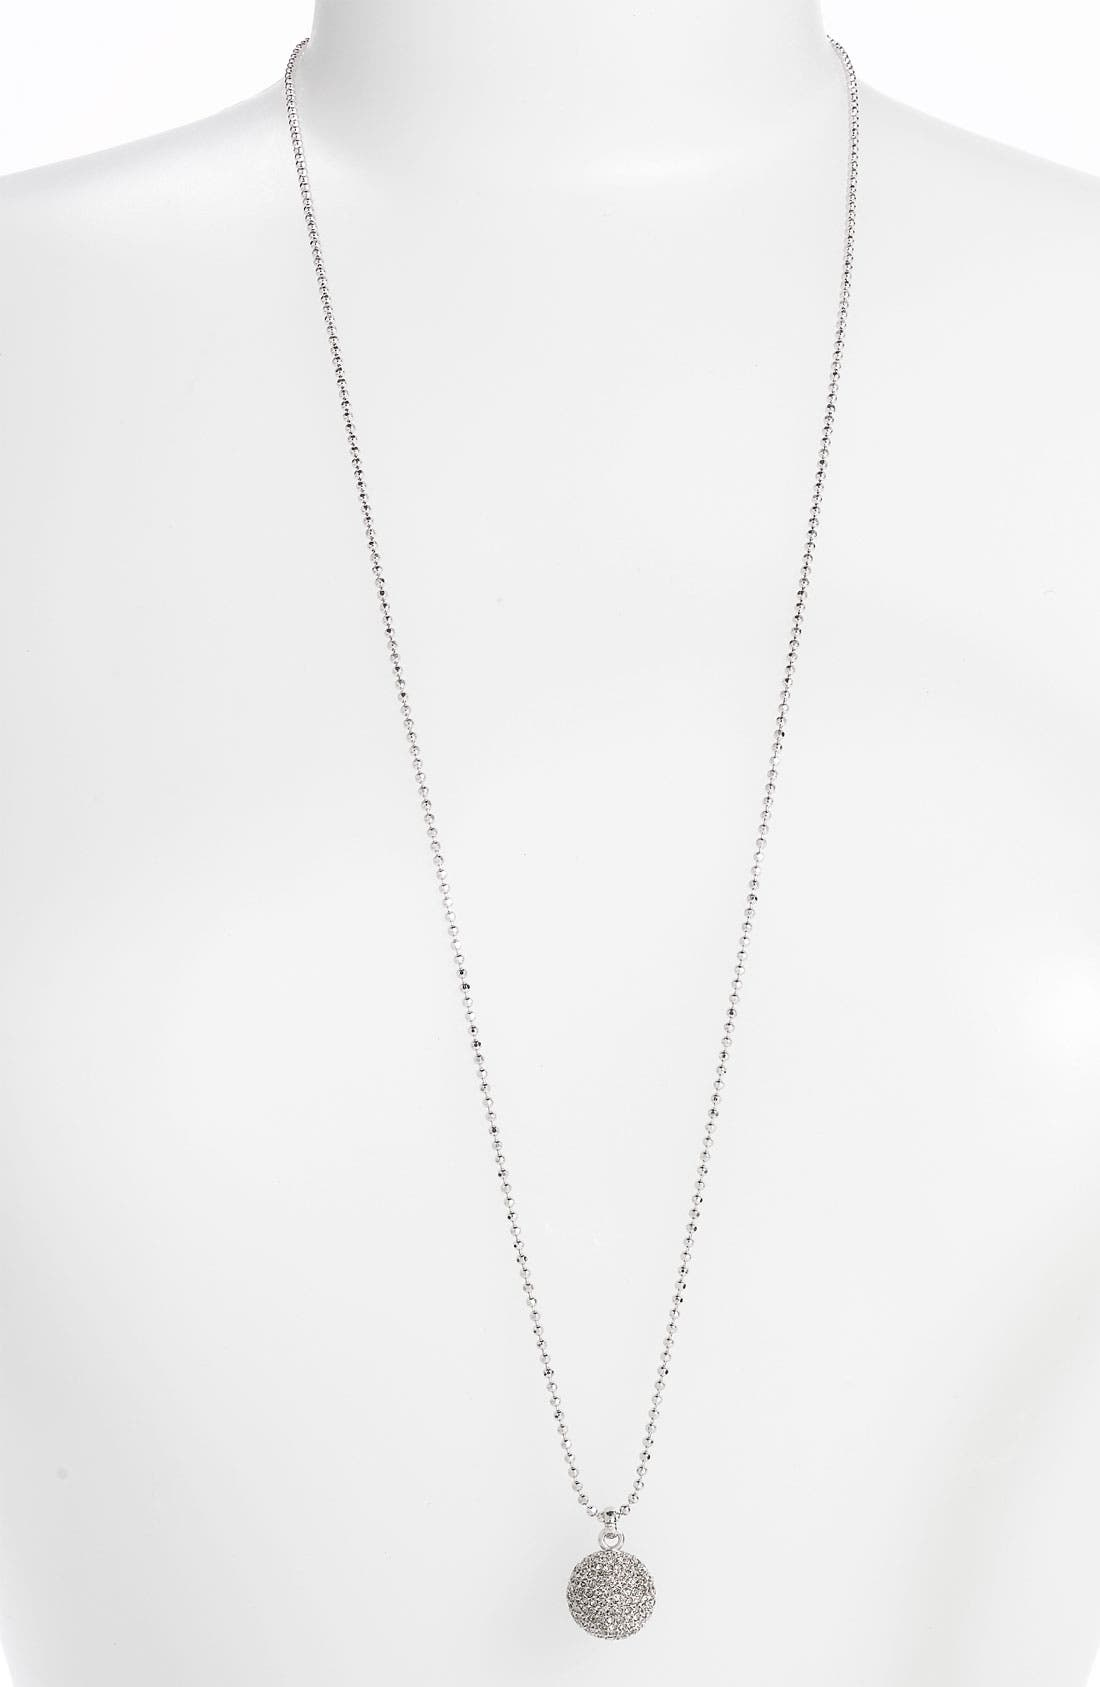 Alternate Image 1 Selected - Michael Kors Pavé Ball Long Necklace